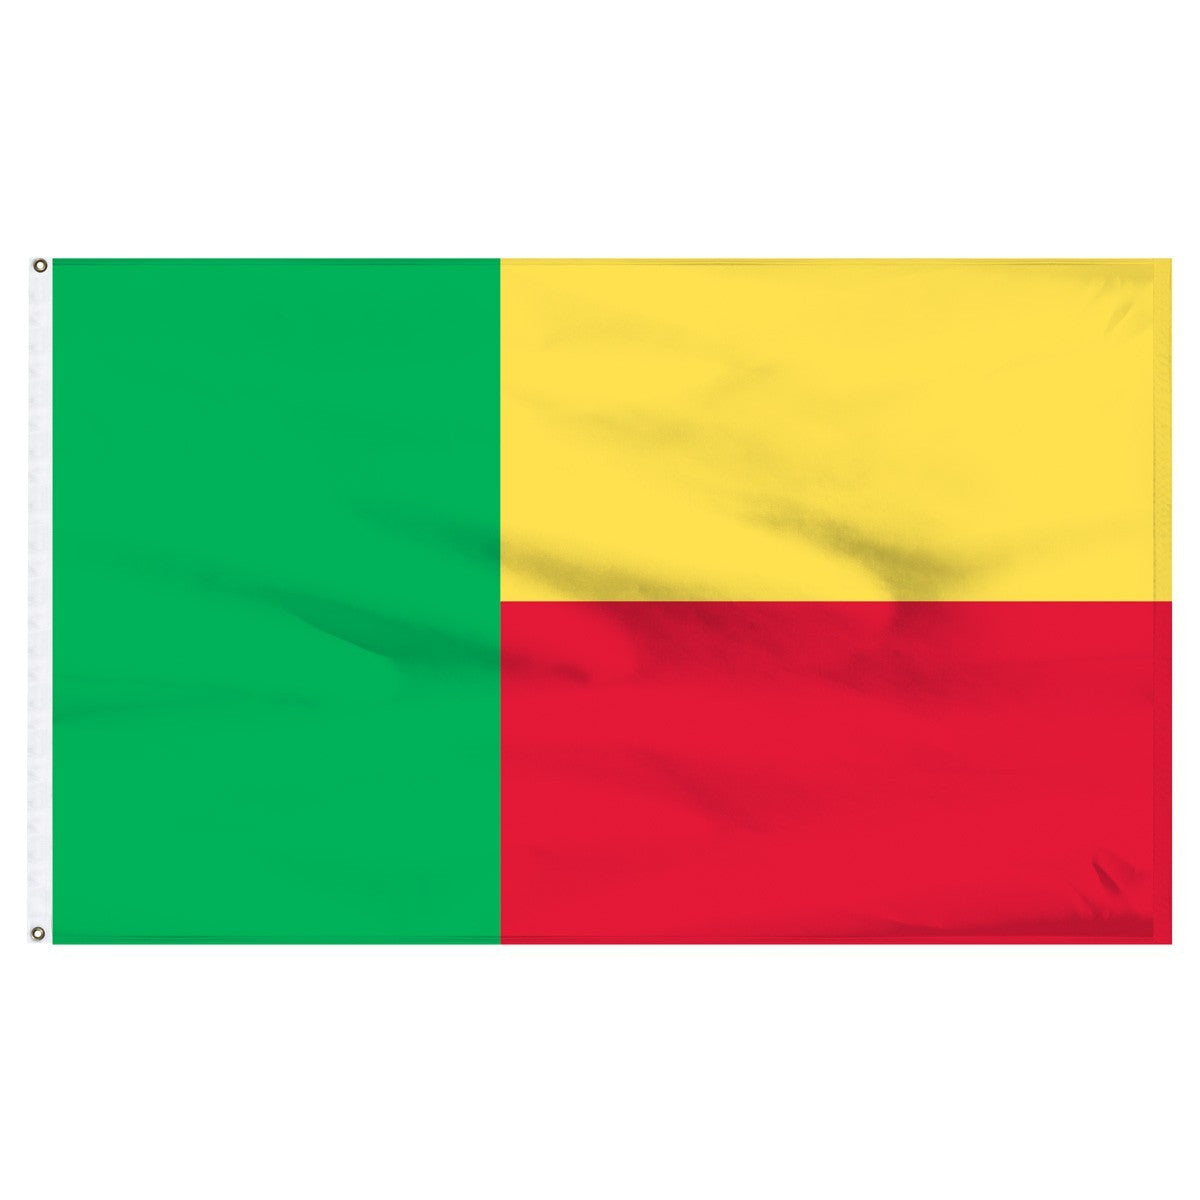 Benin 5' x 8' Outdoor Nylon Country Flag